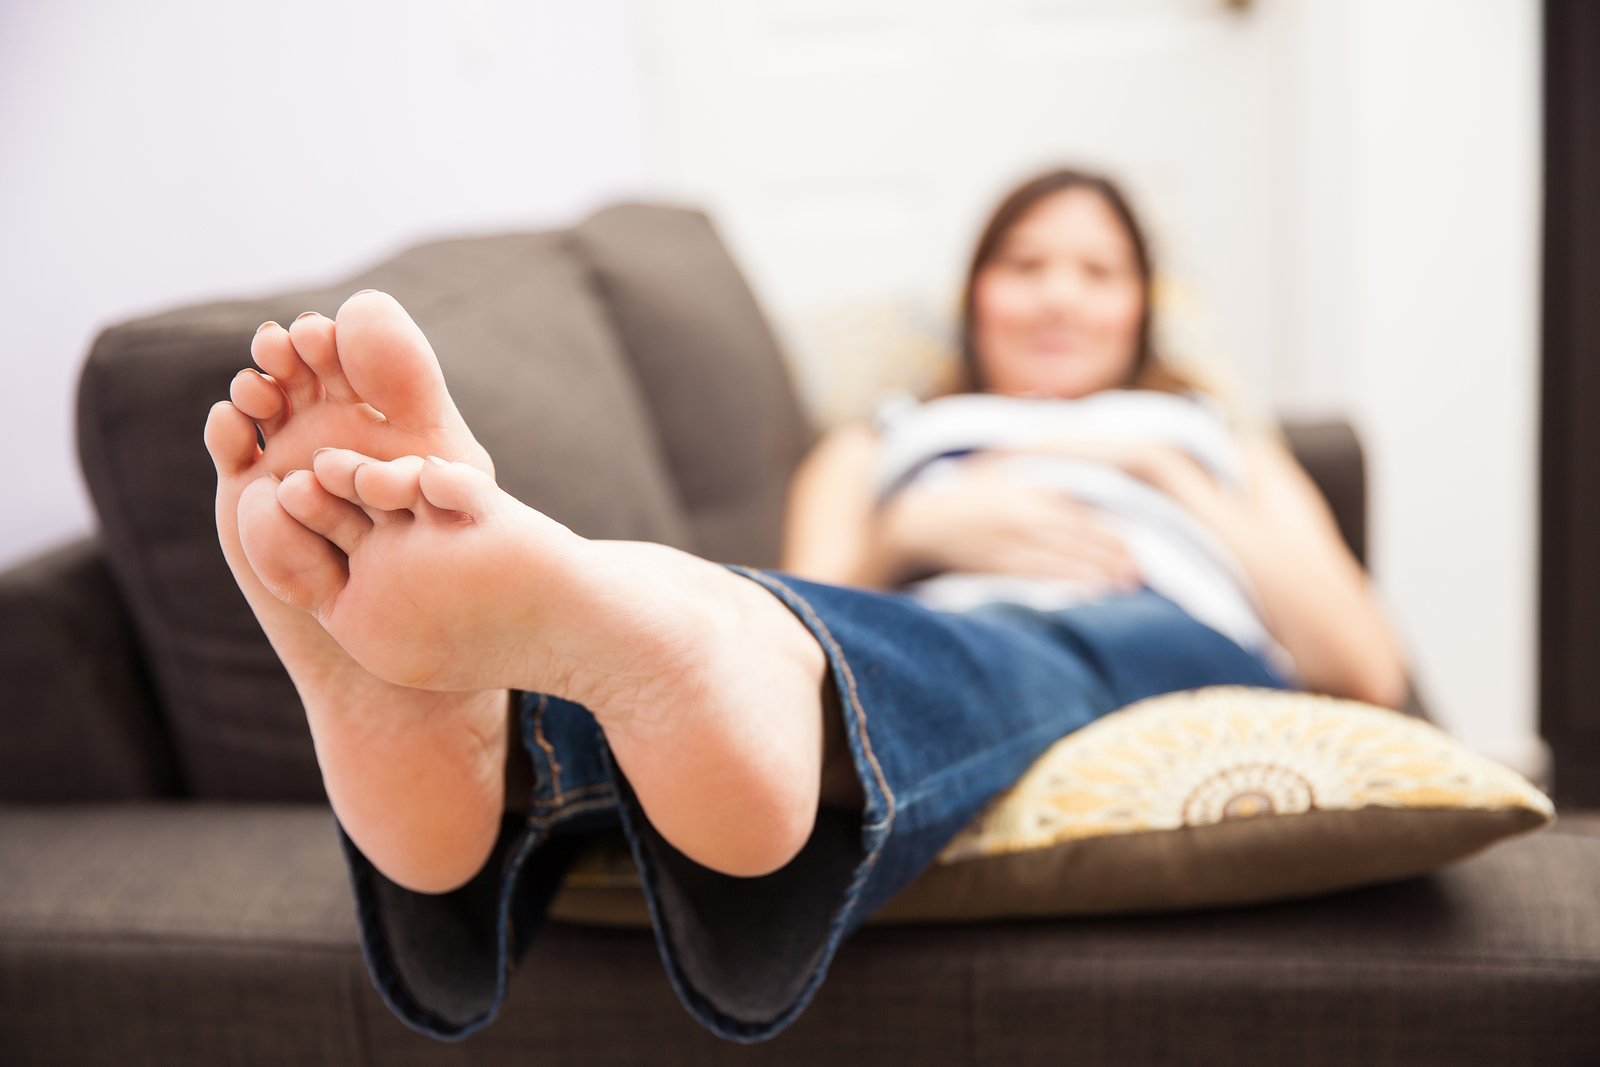 MommySteps knows your feet may seem like strangers for the duration of your pregnancy.